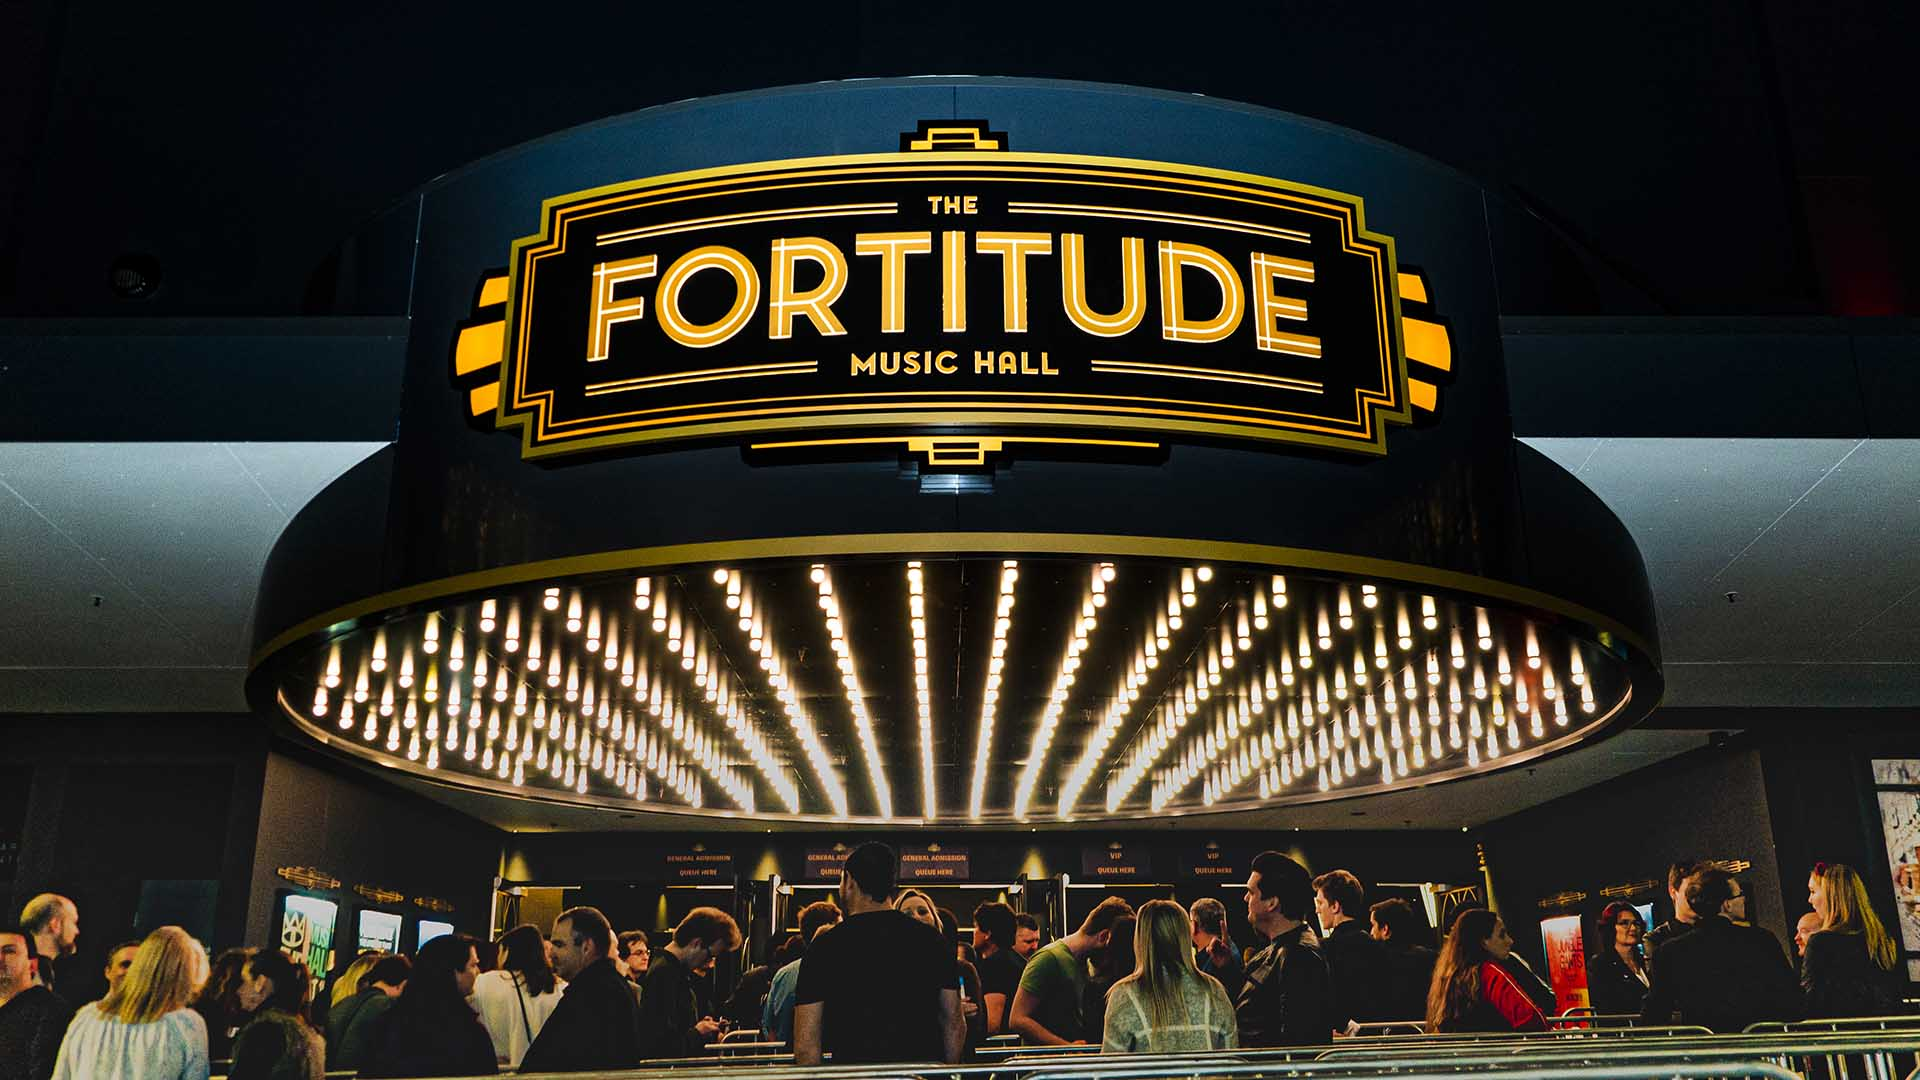 The exterior of Fortitude music hall